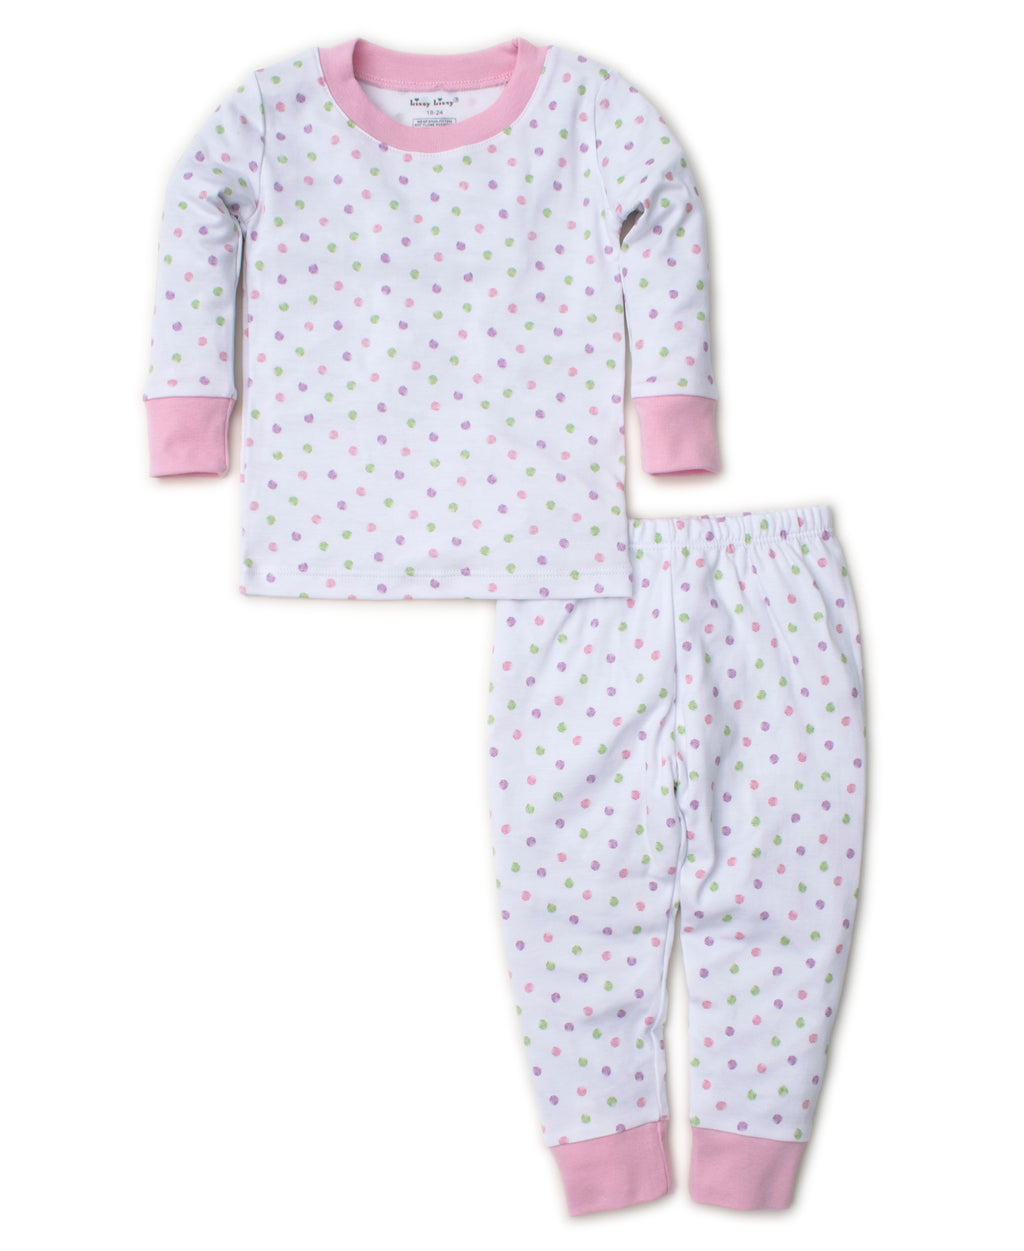 Dapple Dots Pink Pajama Set